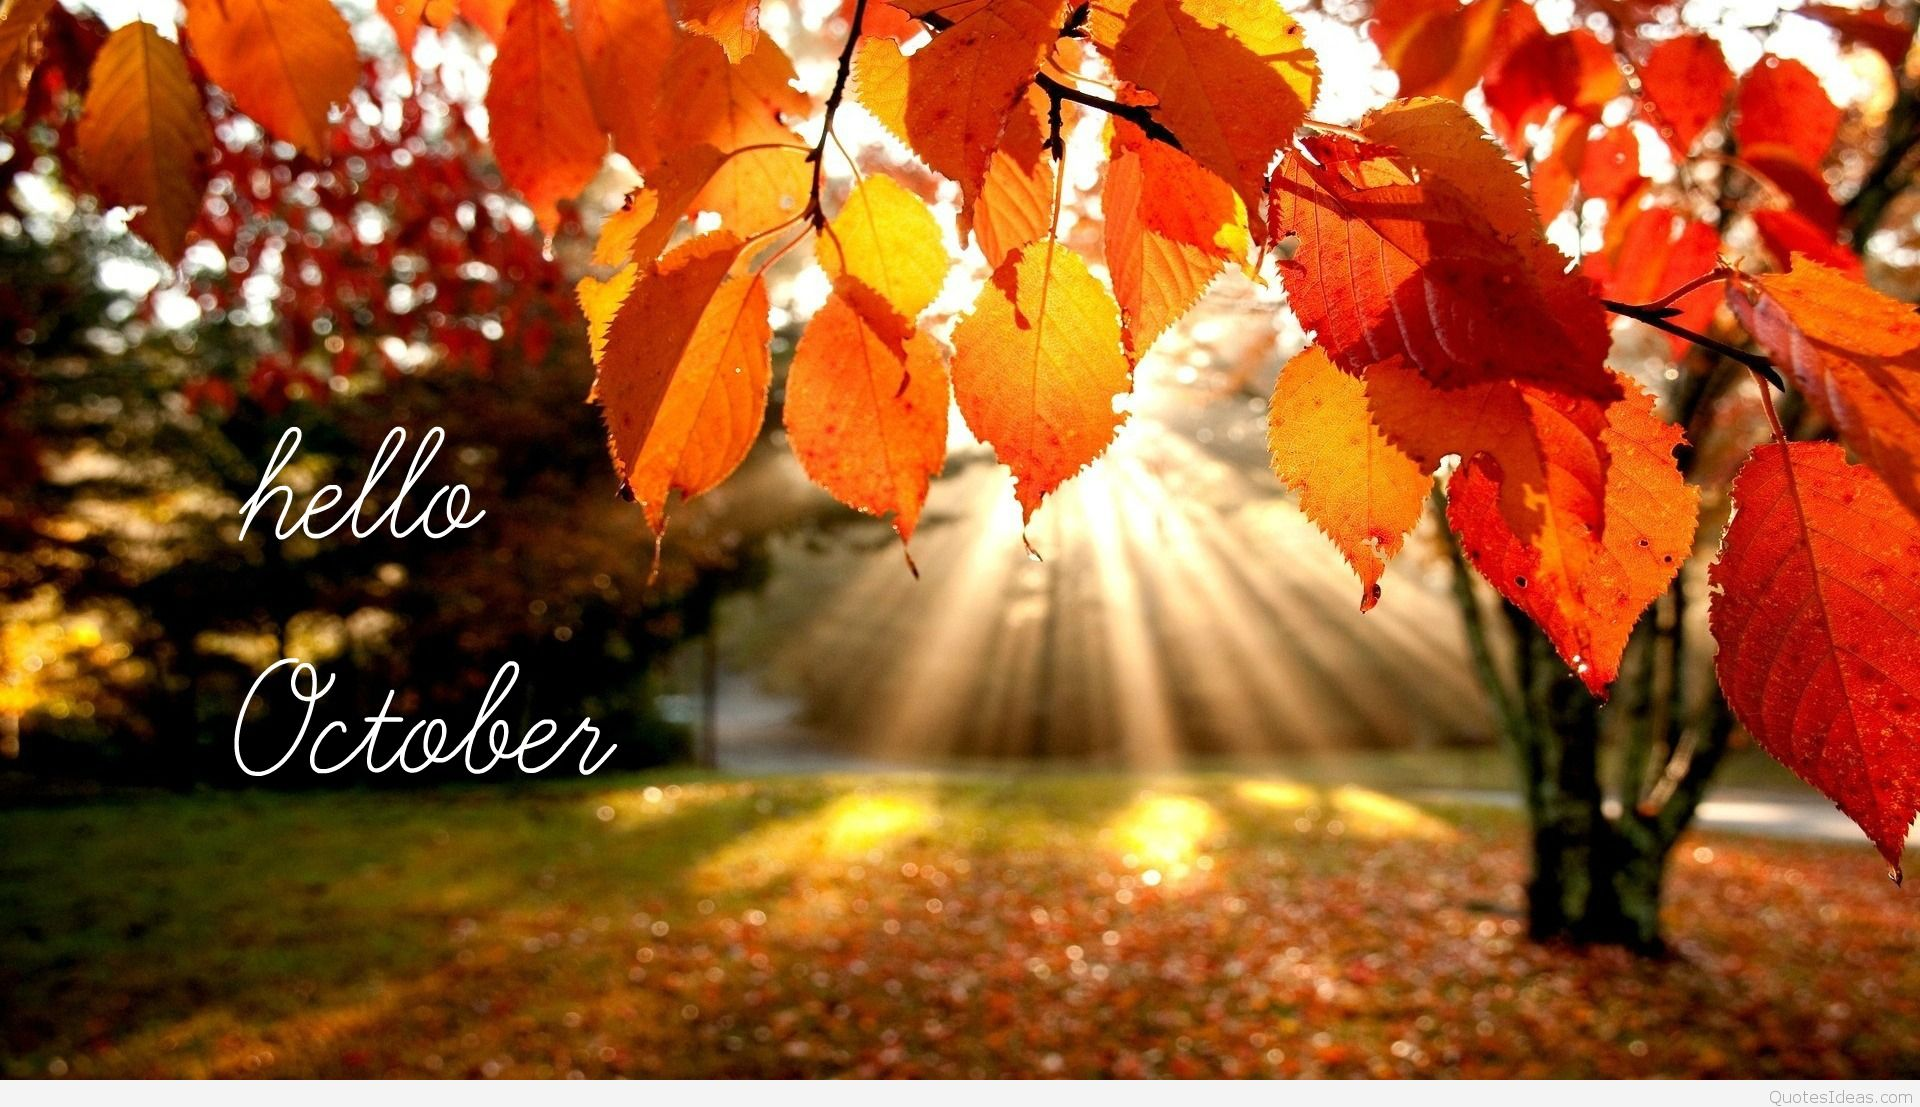 hello-october-hd-wallpapers.jpg